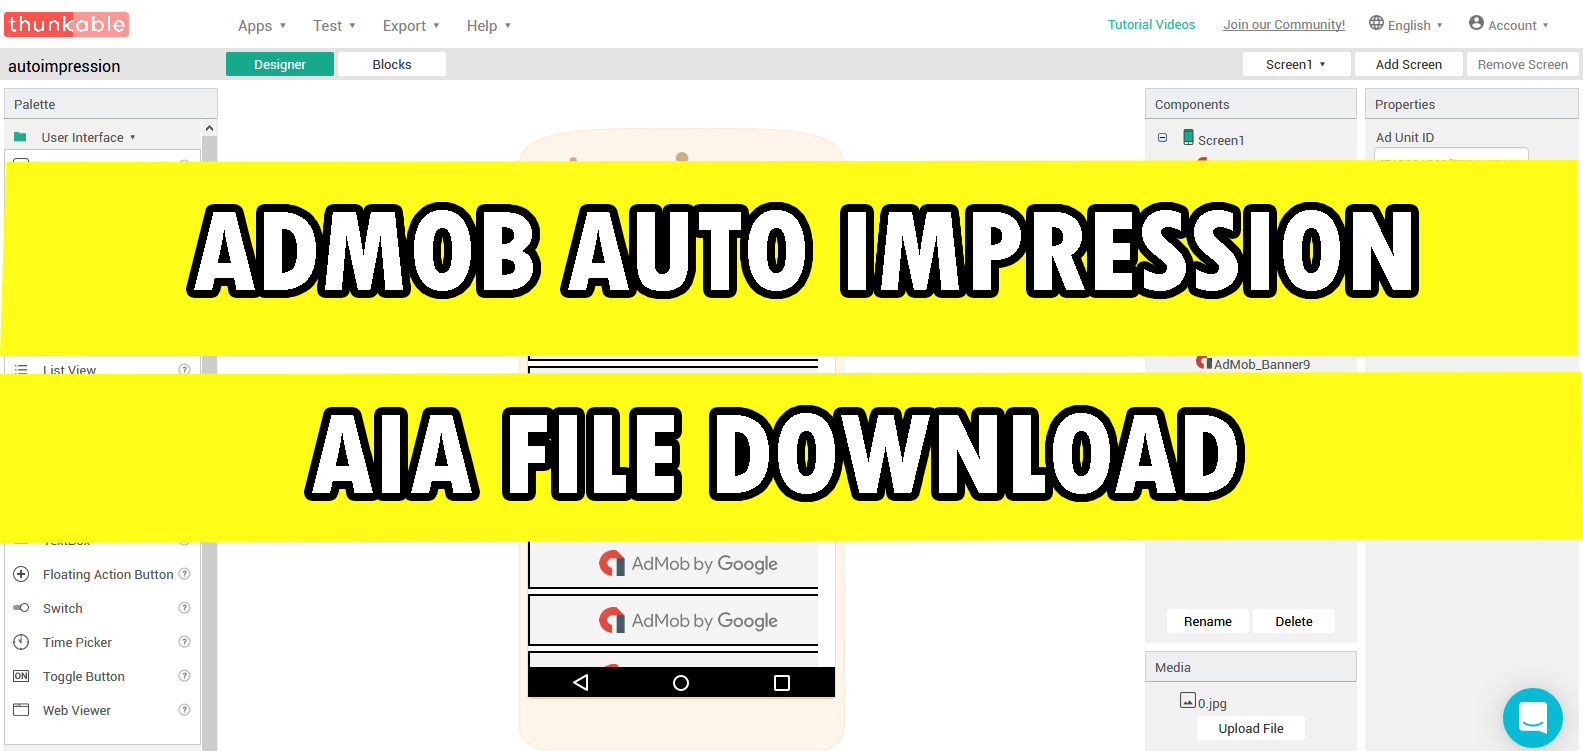 FREE BLOGGER TRICKS: AdMob Auto Impression AIA File Download